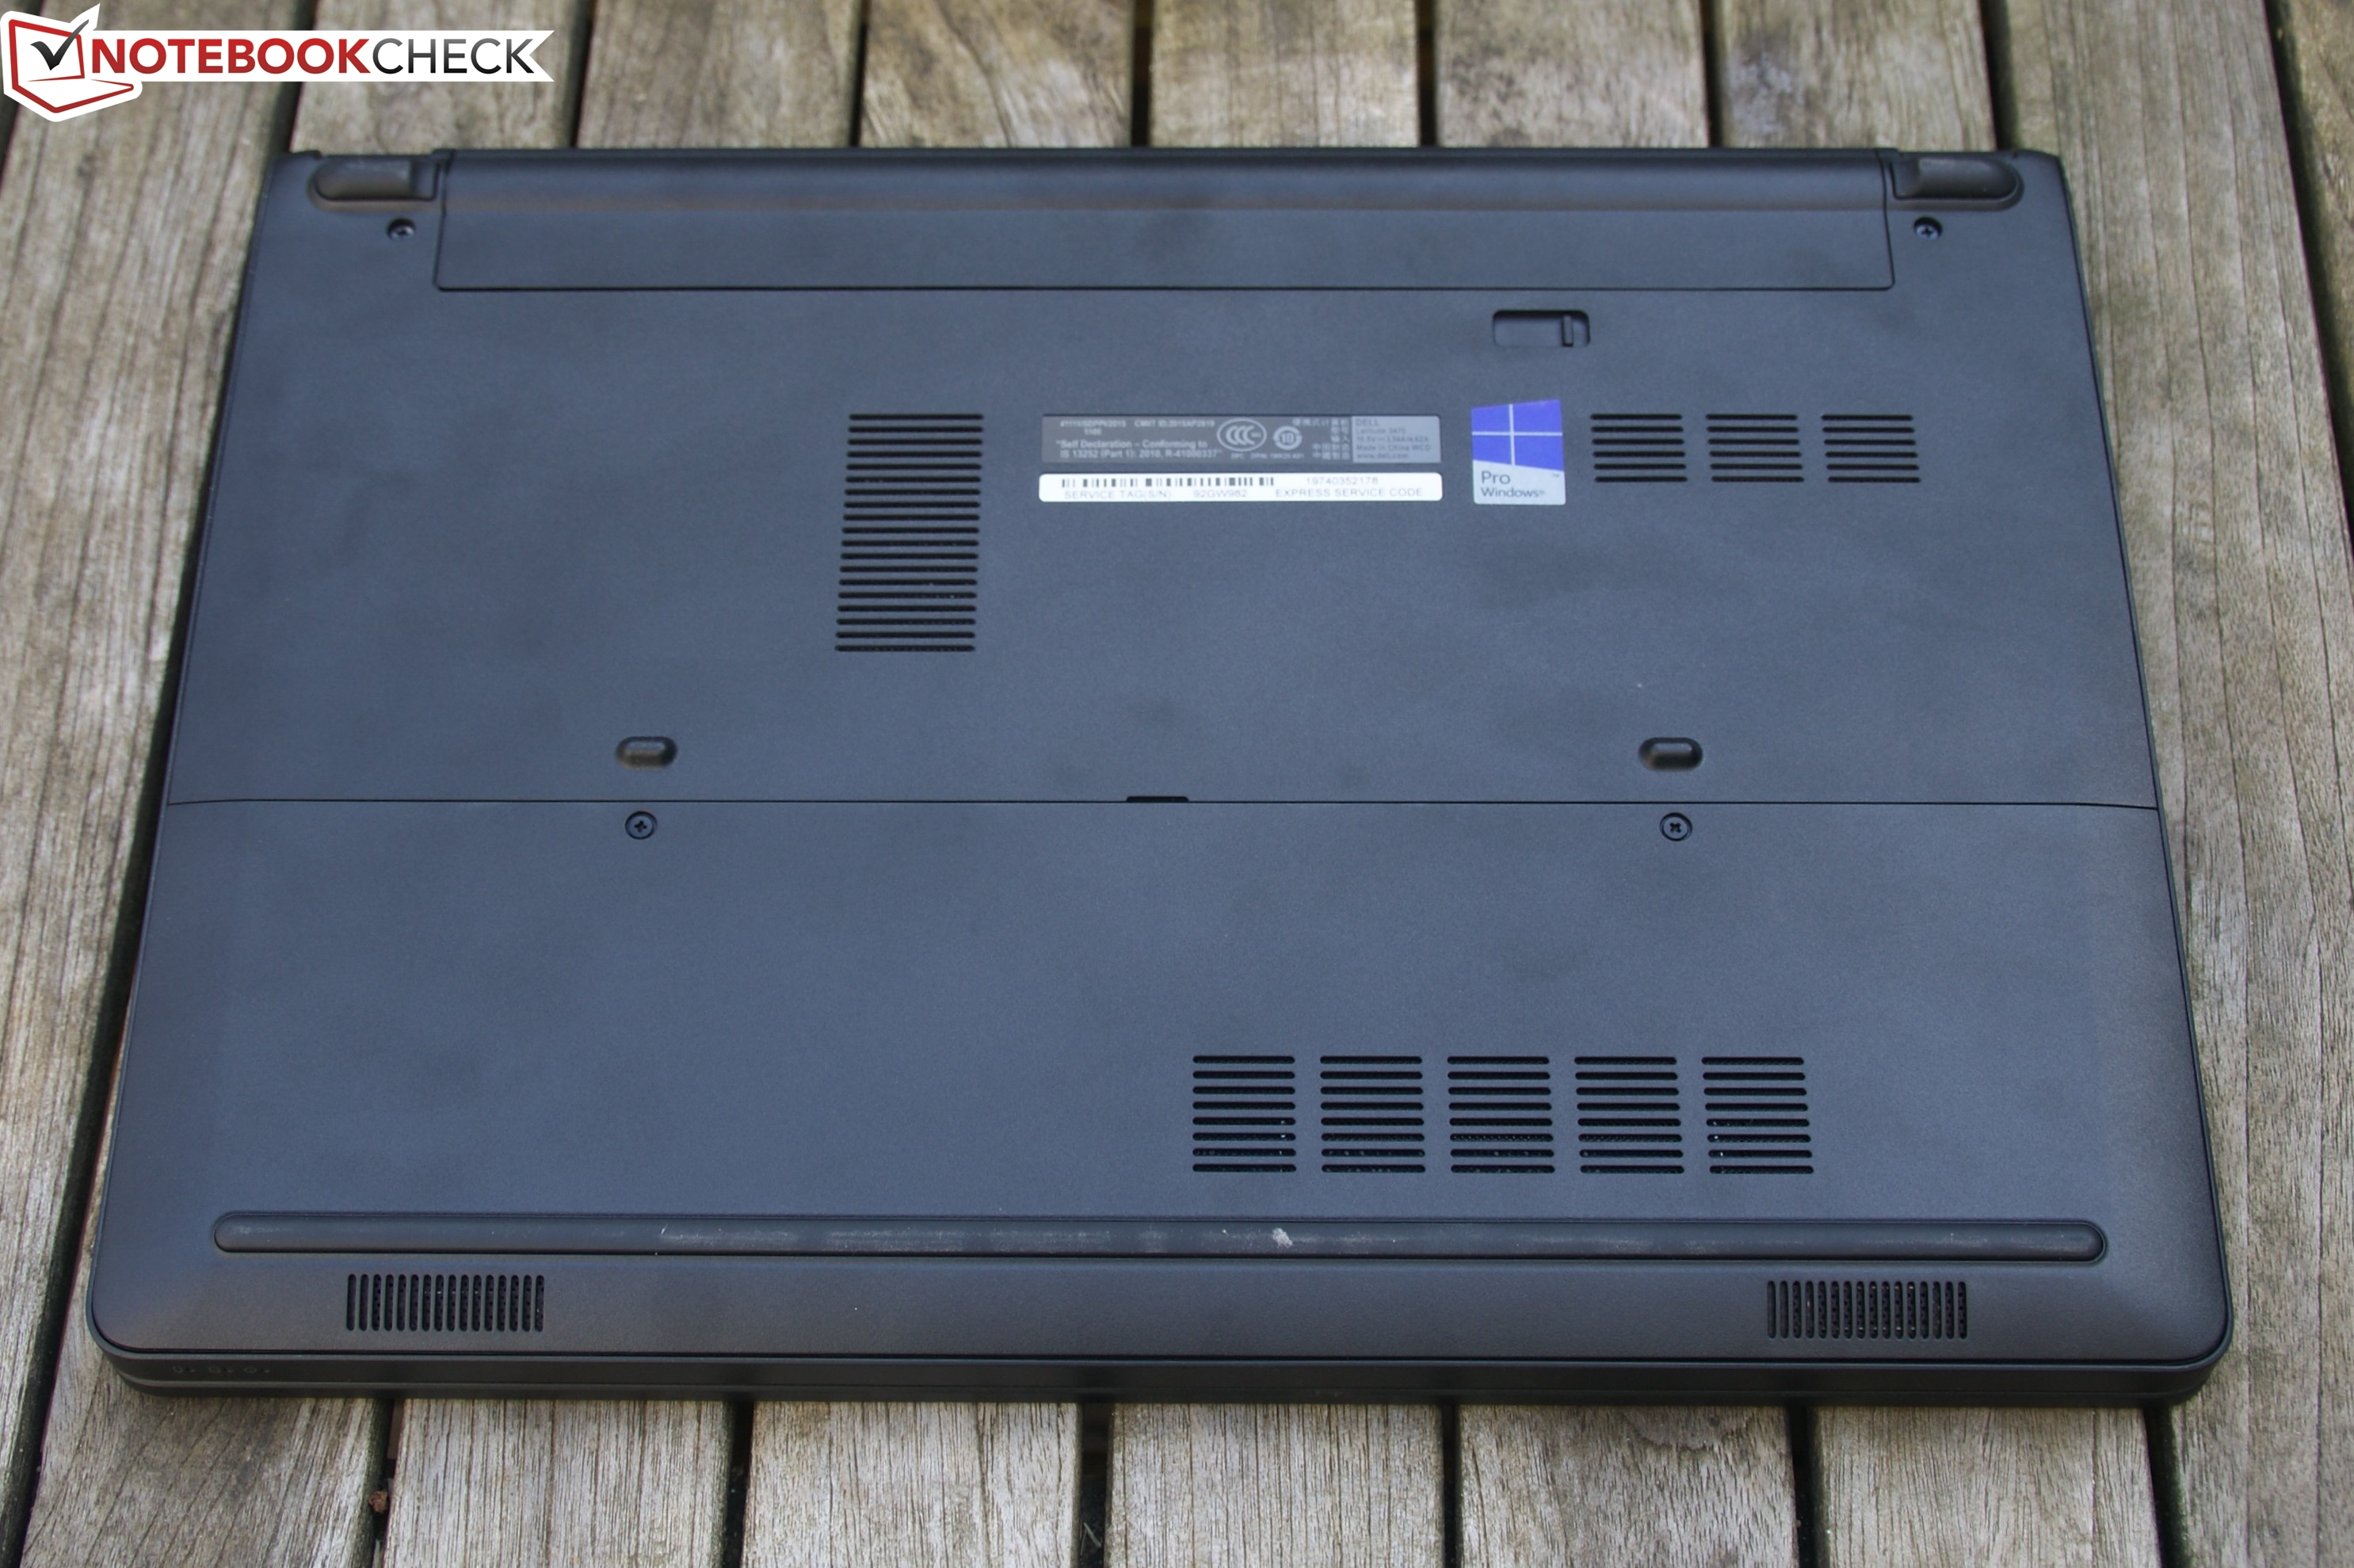 Dell Latitude 14 3470 Notebook Review - NotebookCheck net